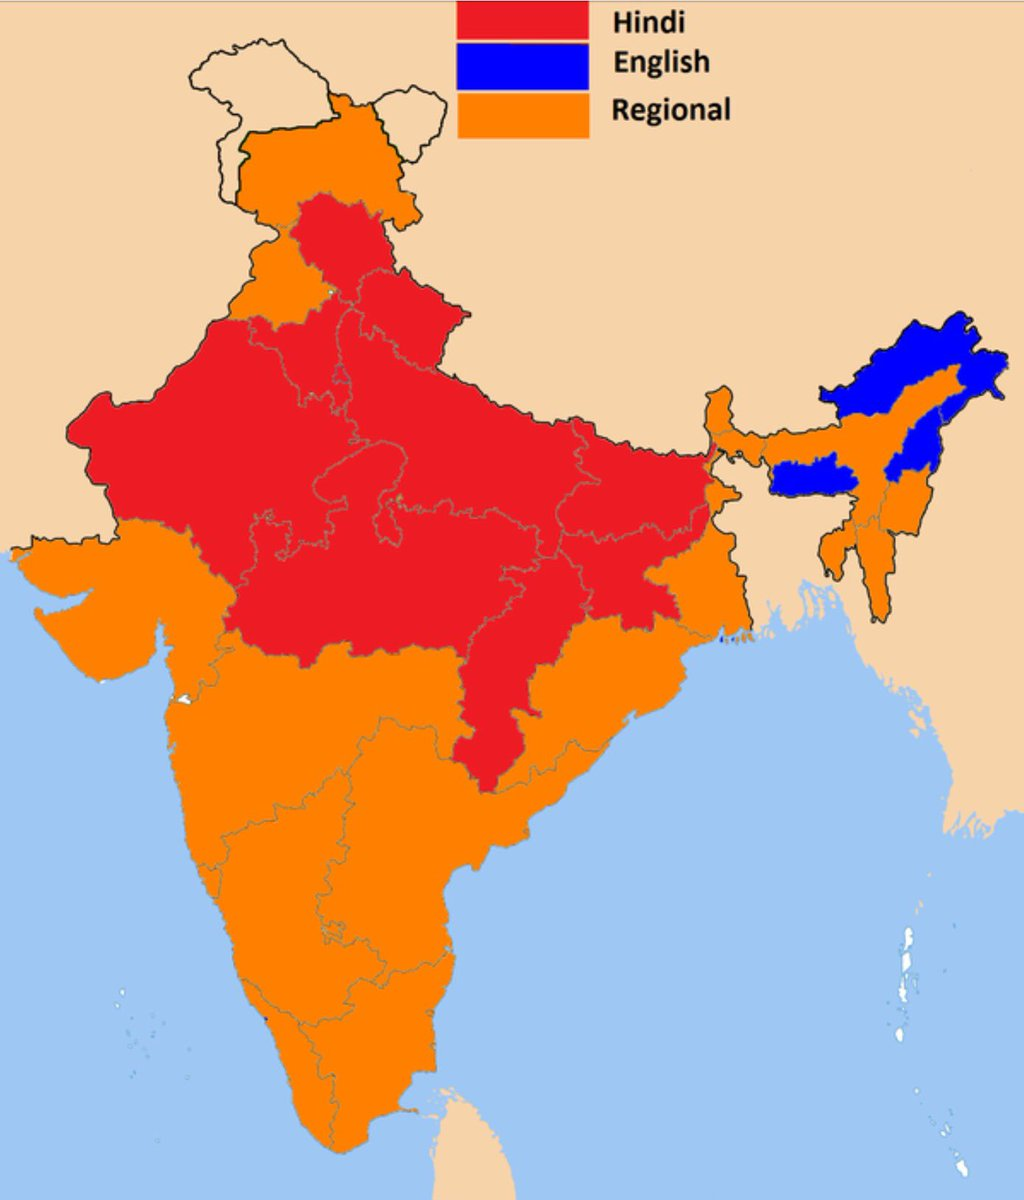 Geetika Swami On Twitter A Daughter Of SanskritSpokenby More - Where is hindi spoken in the world